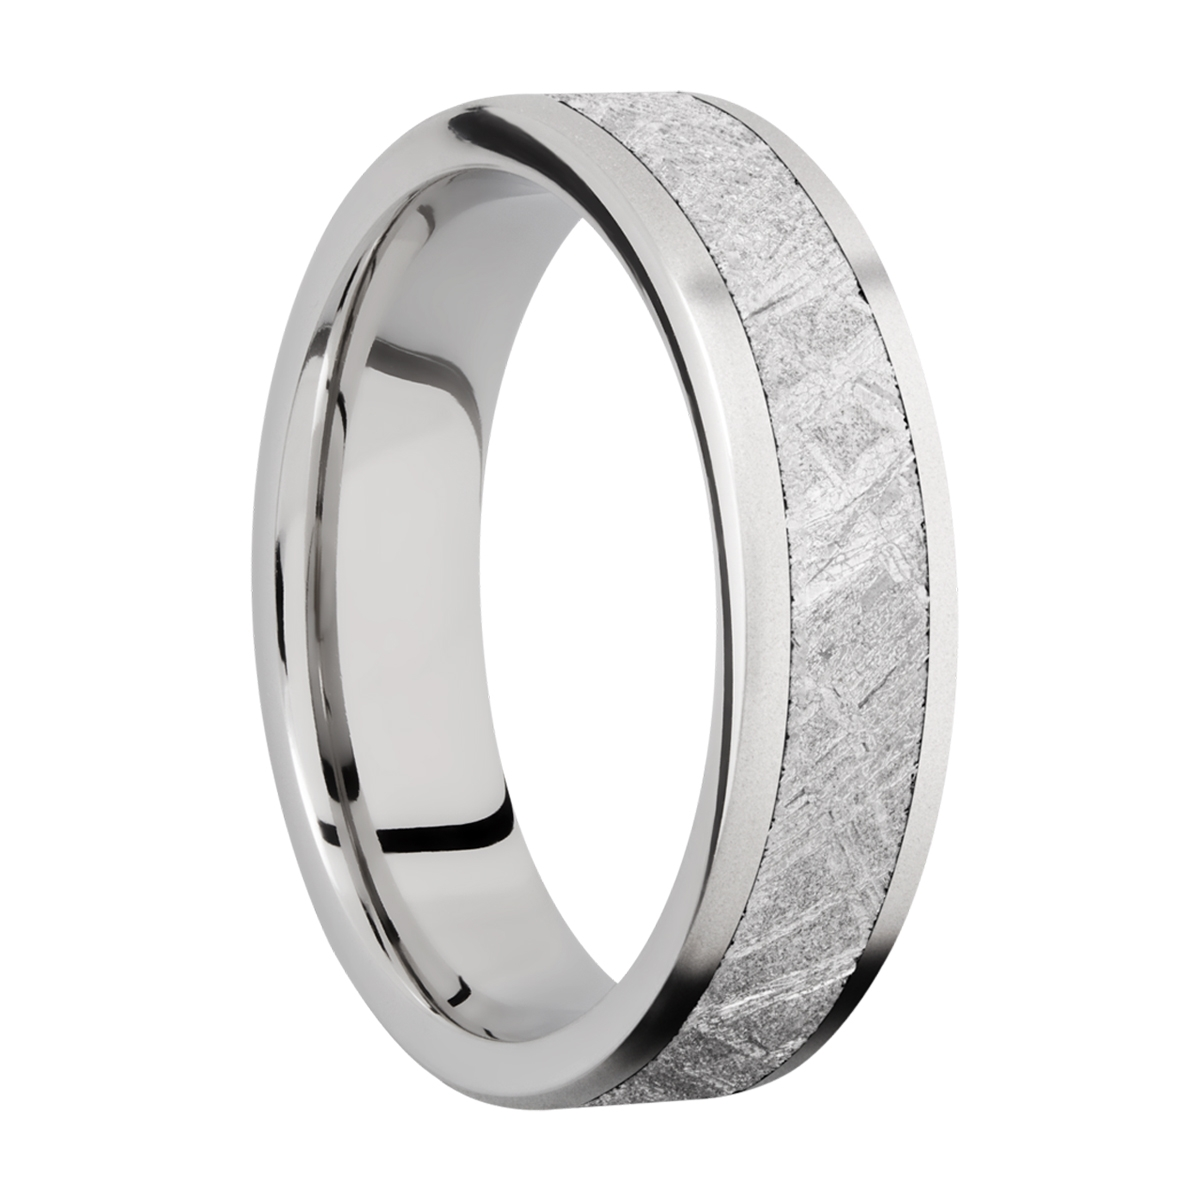 Lashbrook CC6F14/METEORITE Cobalt Chrome Wedding Ring or Band Alternative View 1